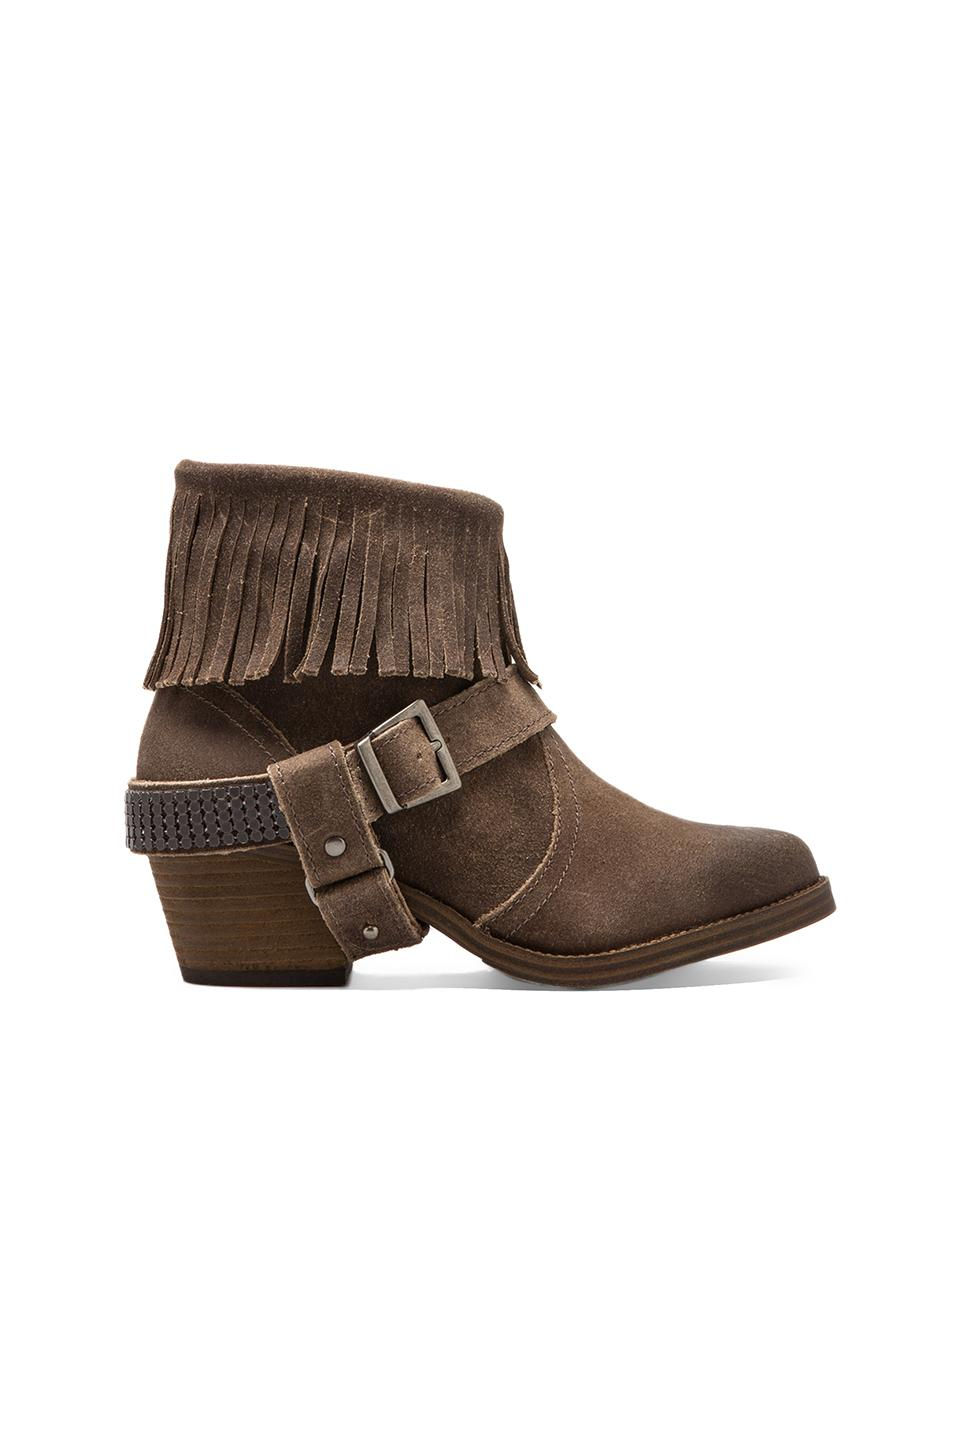 Steve Madden Cavvvo Bootie in Taupe Suede